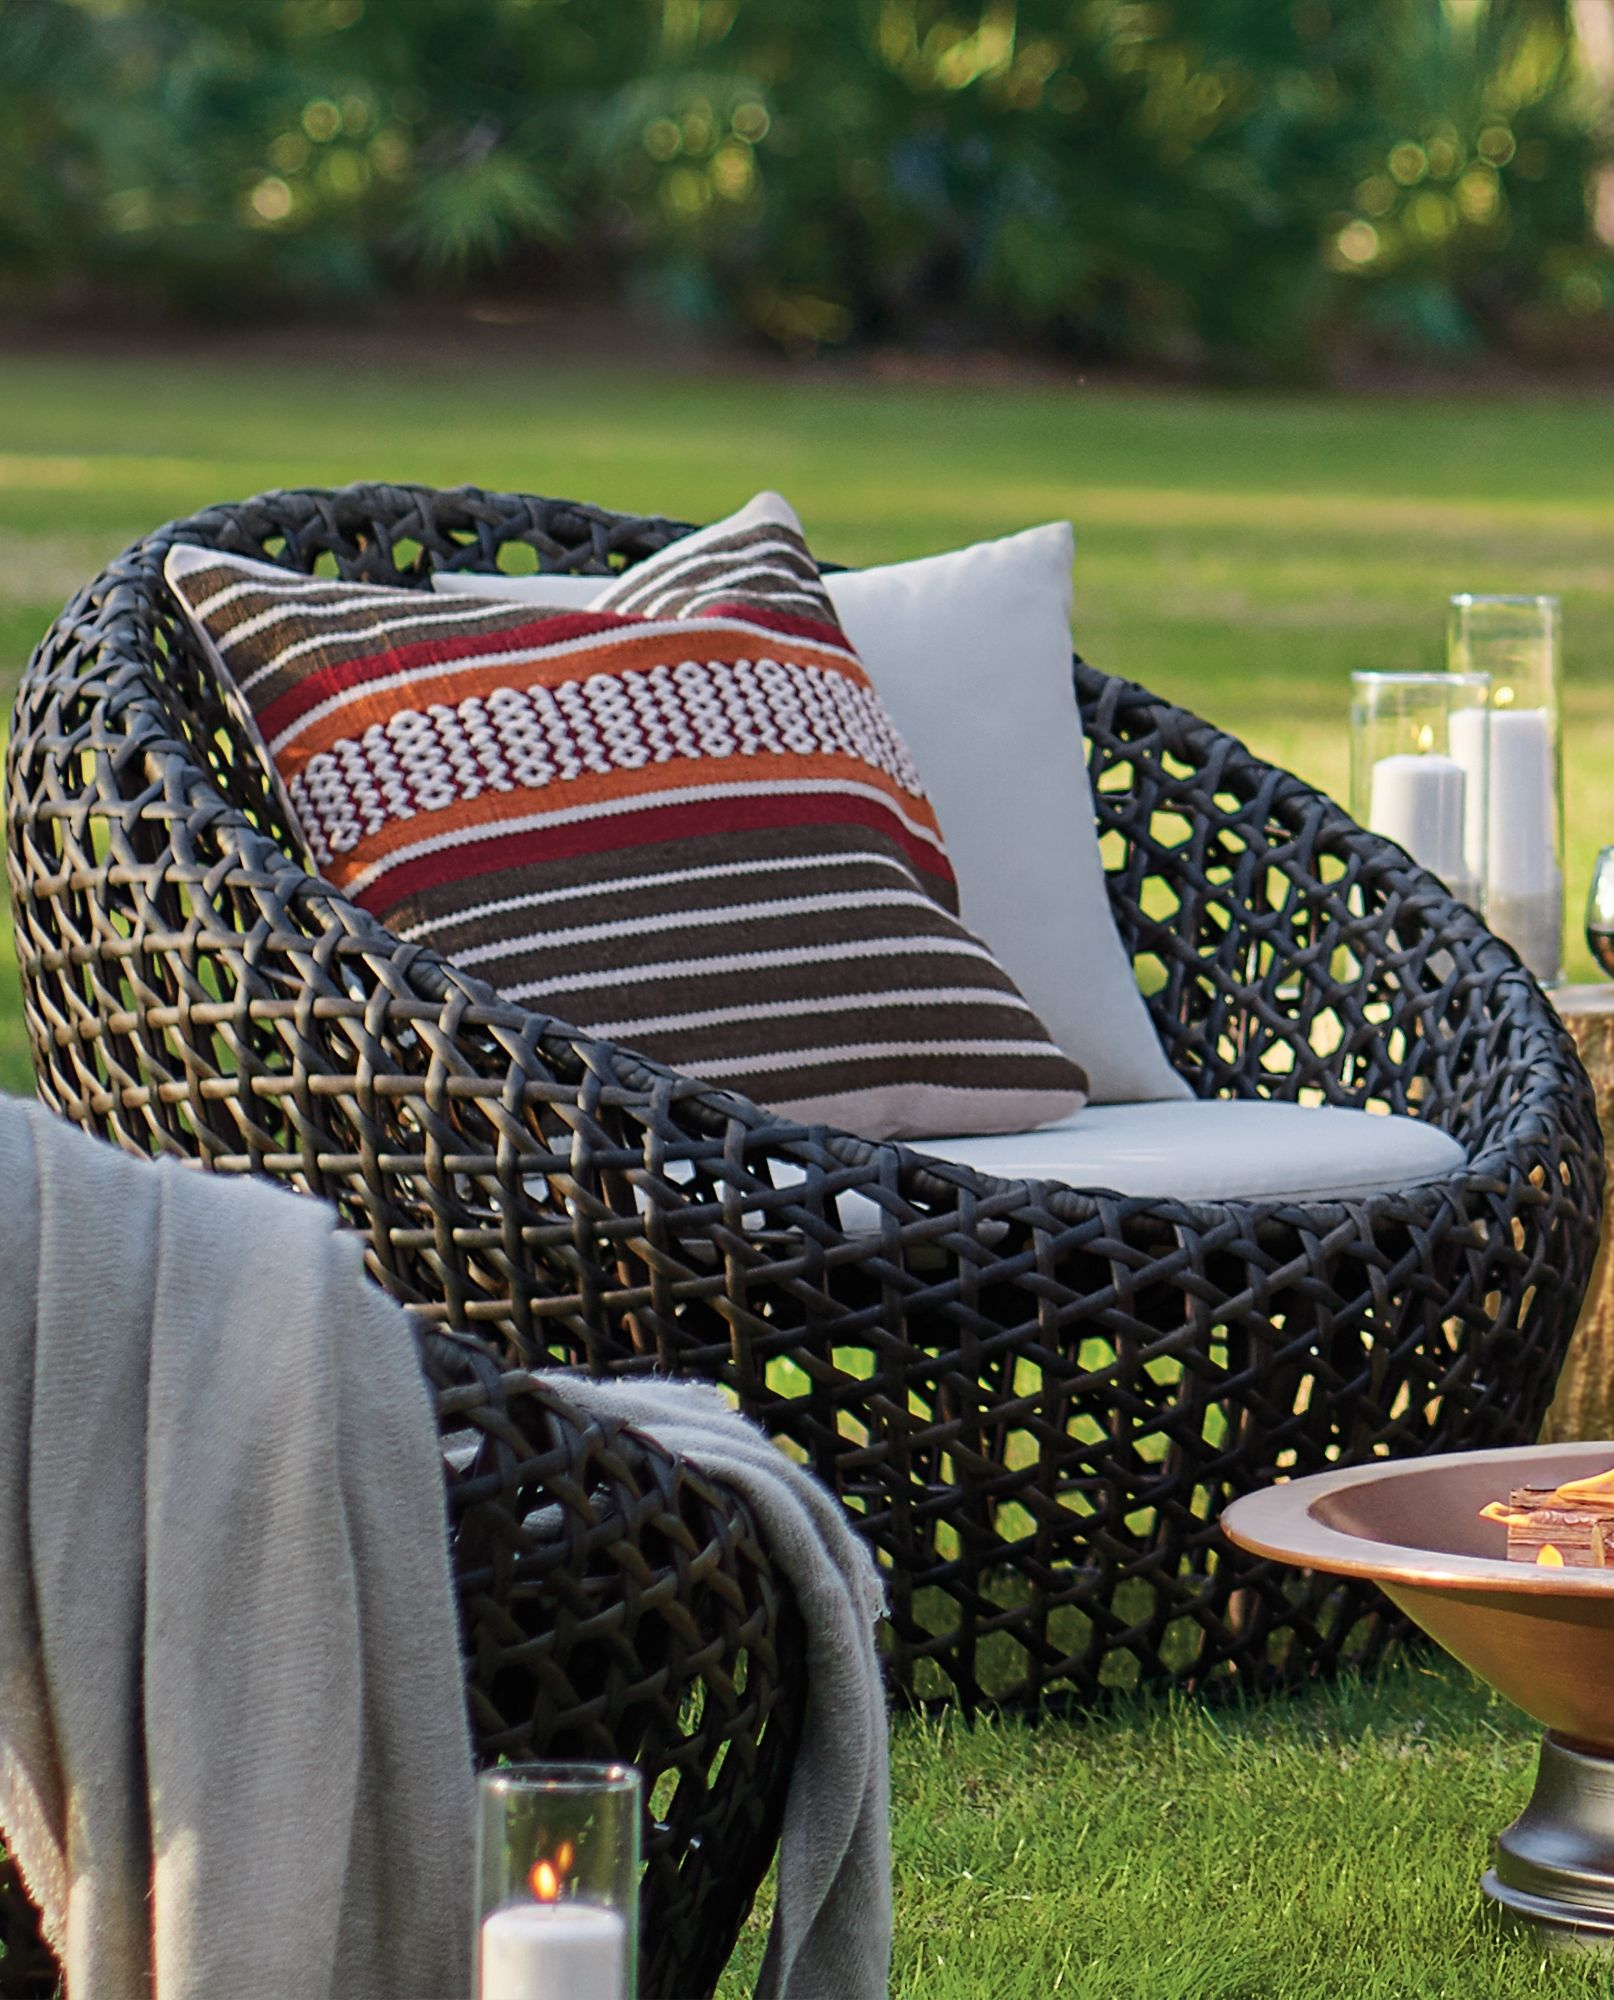 Cocoon chair outdoor - Uncomplicated Modern Form Is Always Transformative Which Is Why The Mason Cocoon Chair By David